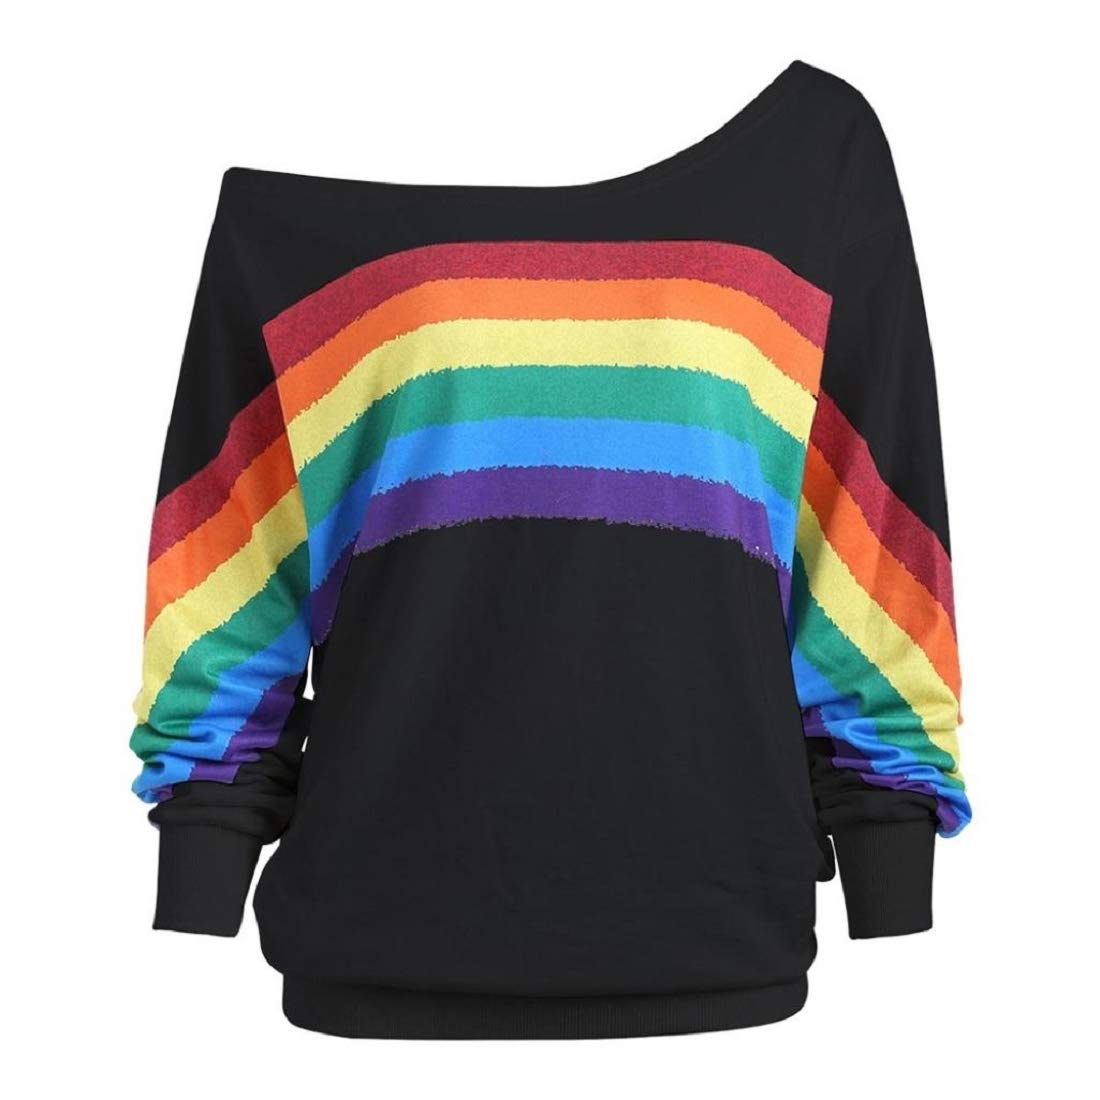 03127496741 Amazon.com: GONKOMA Women Plus Size Tops Casual Long Sleeve Rainbow Print  Pullover Blouse Shirts Tees Loose Sweatshirt T Shirts: Clothing